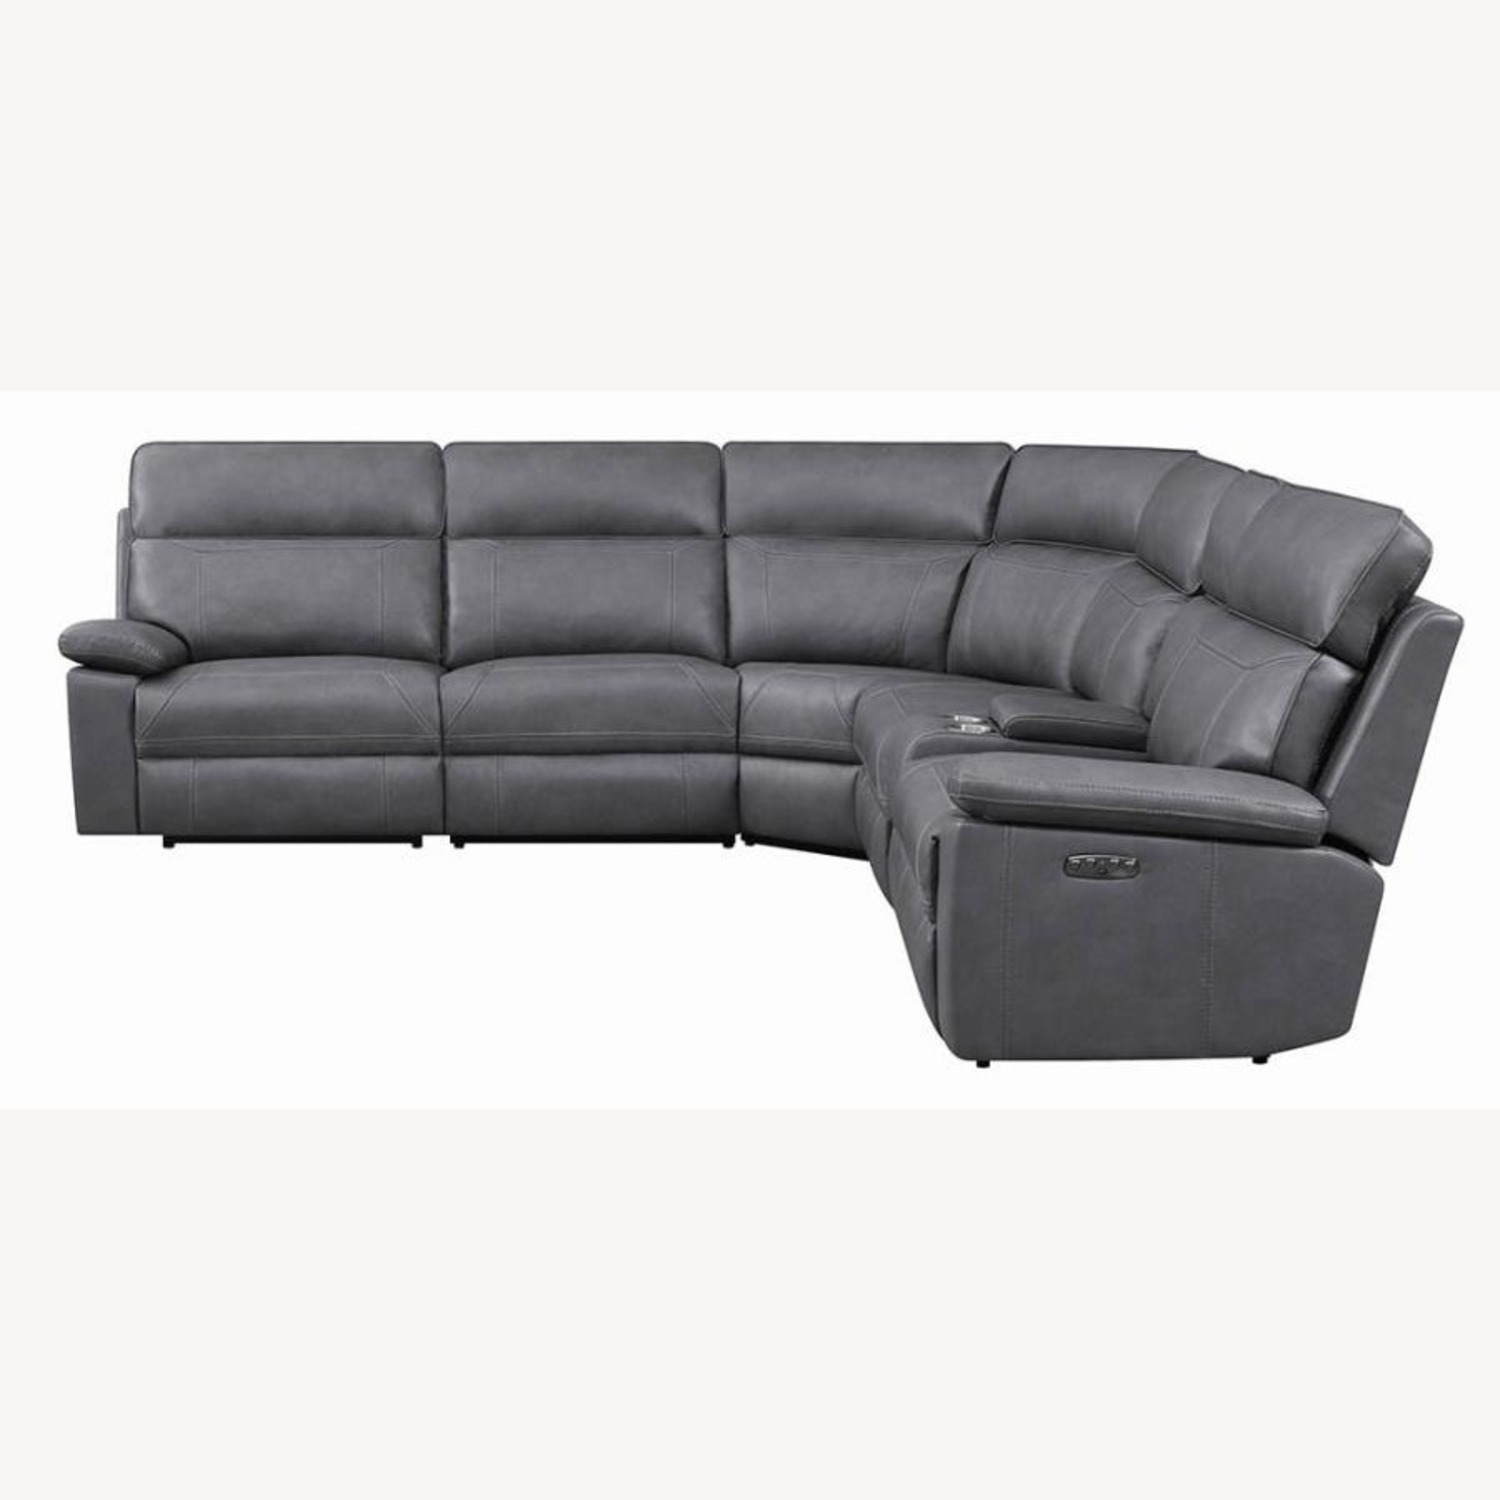 6-Piece Power2 Sectional In Grey Leatherette - image-2